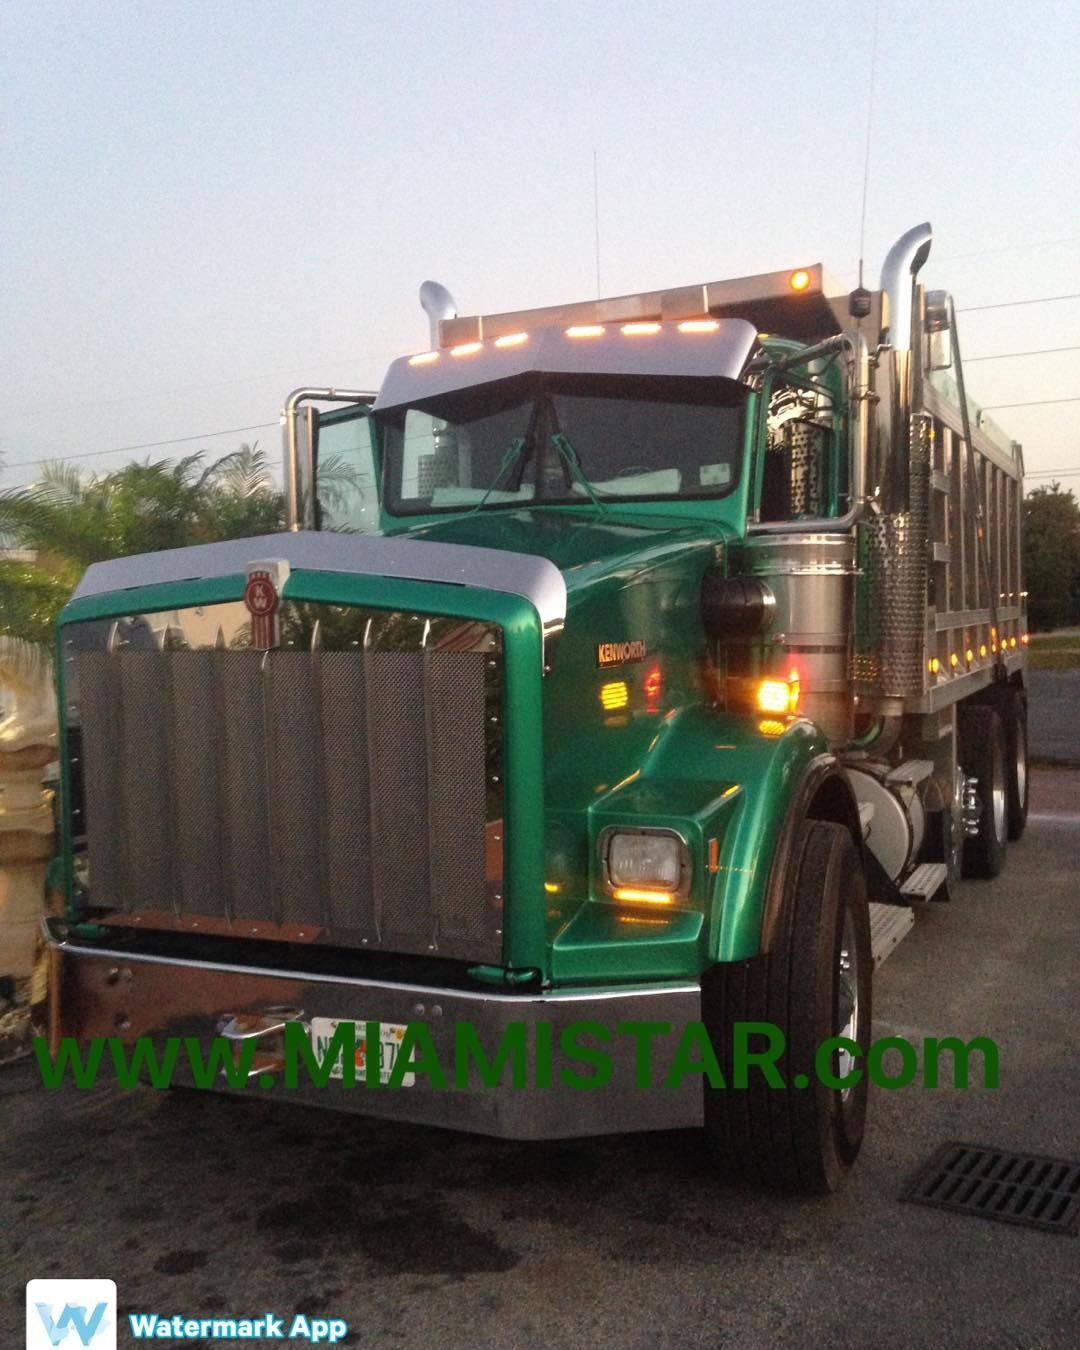 hight resolution of  kenworth t800 wide grille greenmachine dump truck chrome parts accessories led trucking worktruck custom kwopper miami usa miamistar